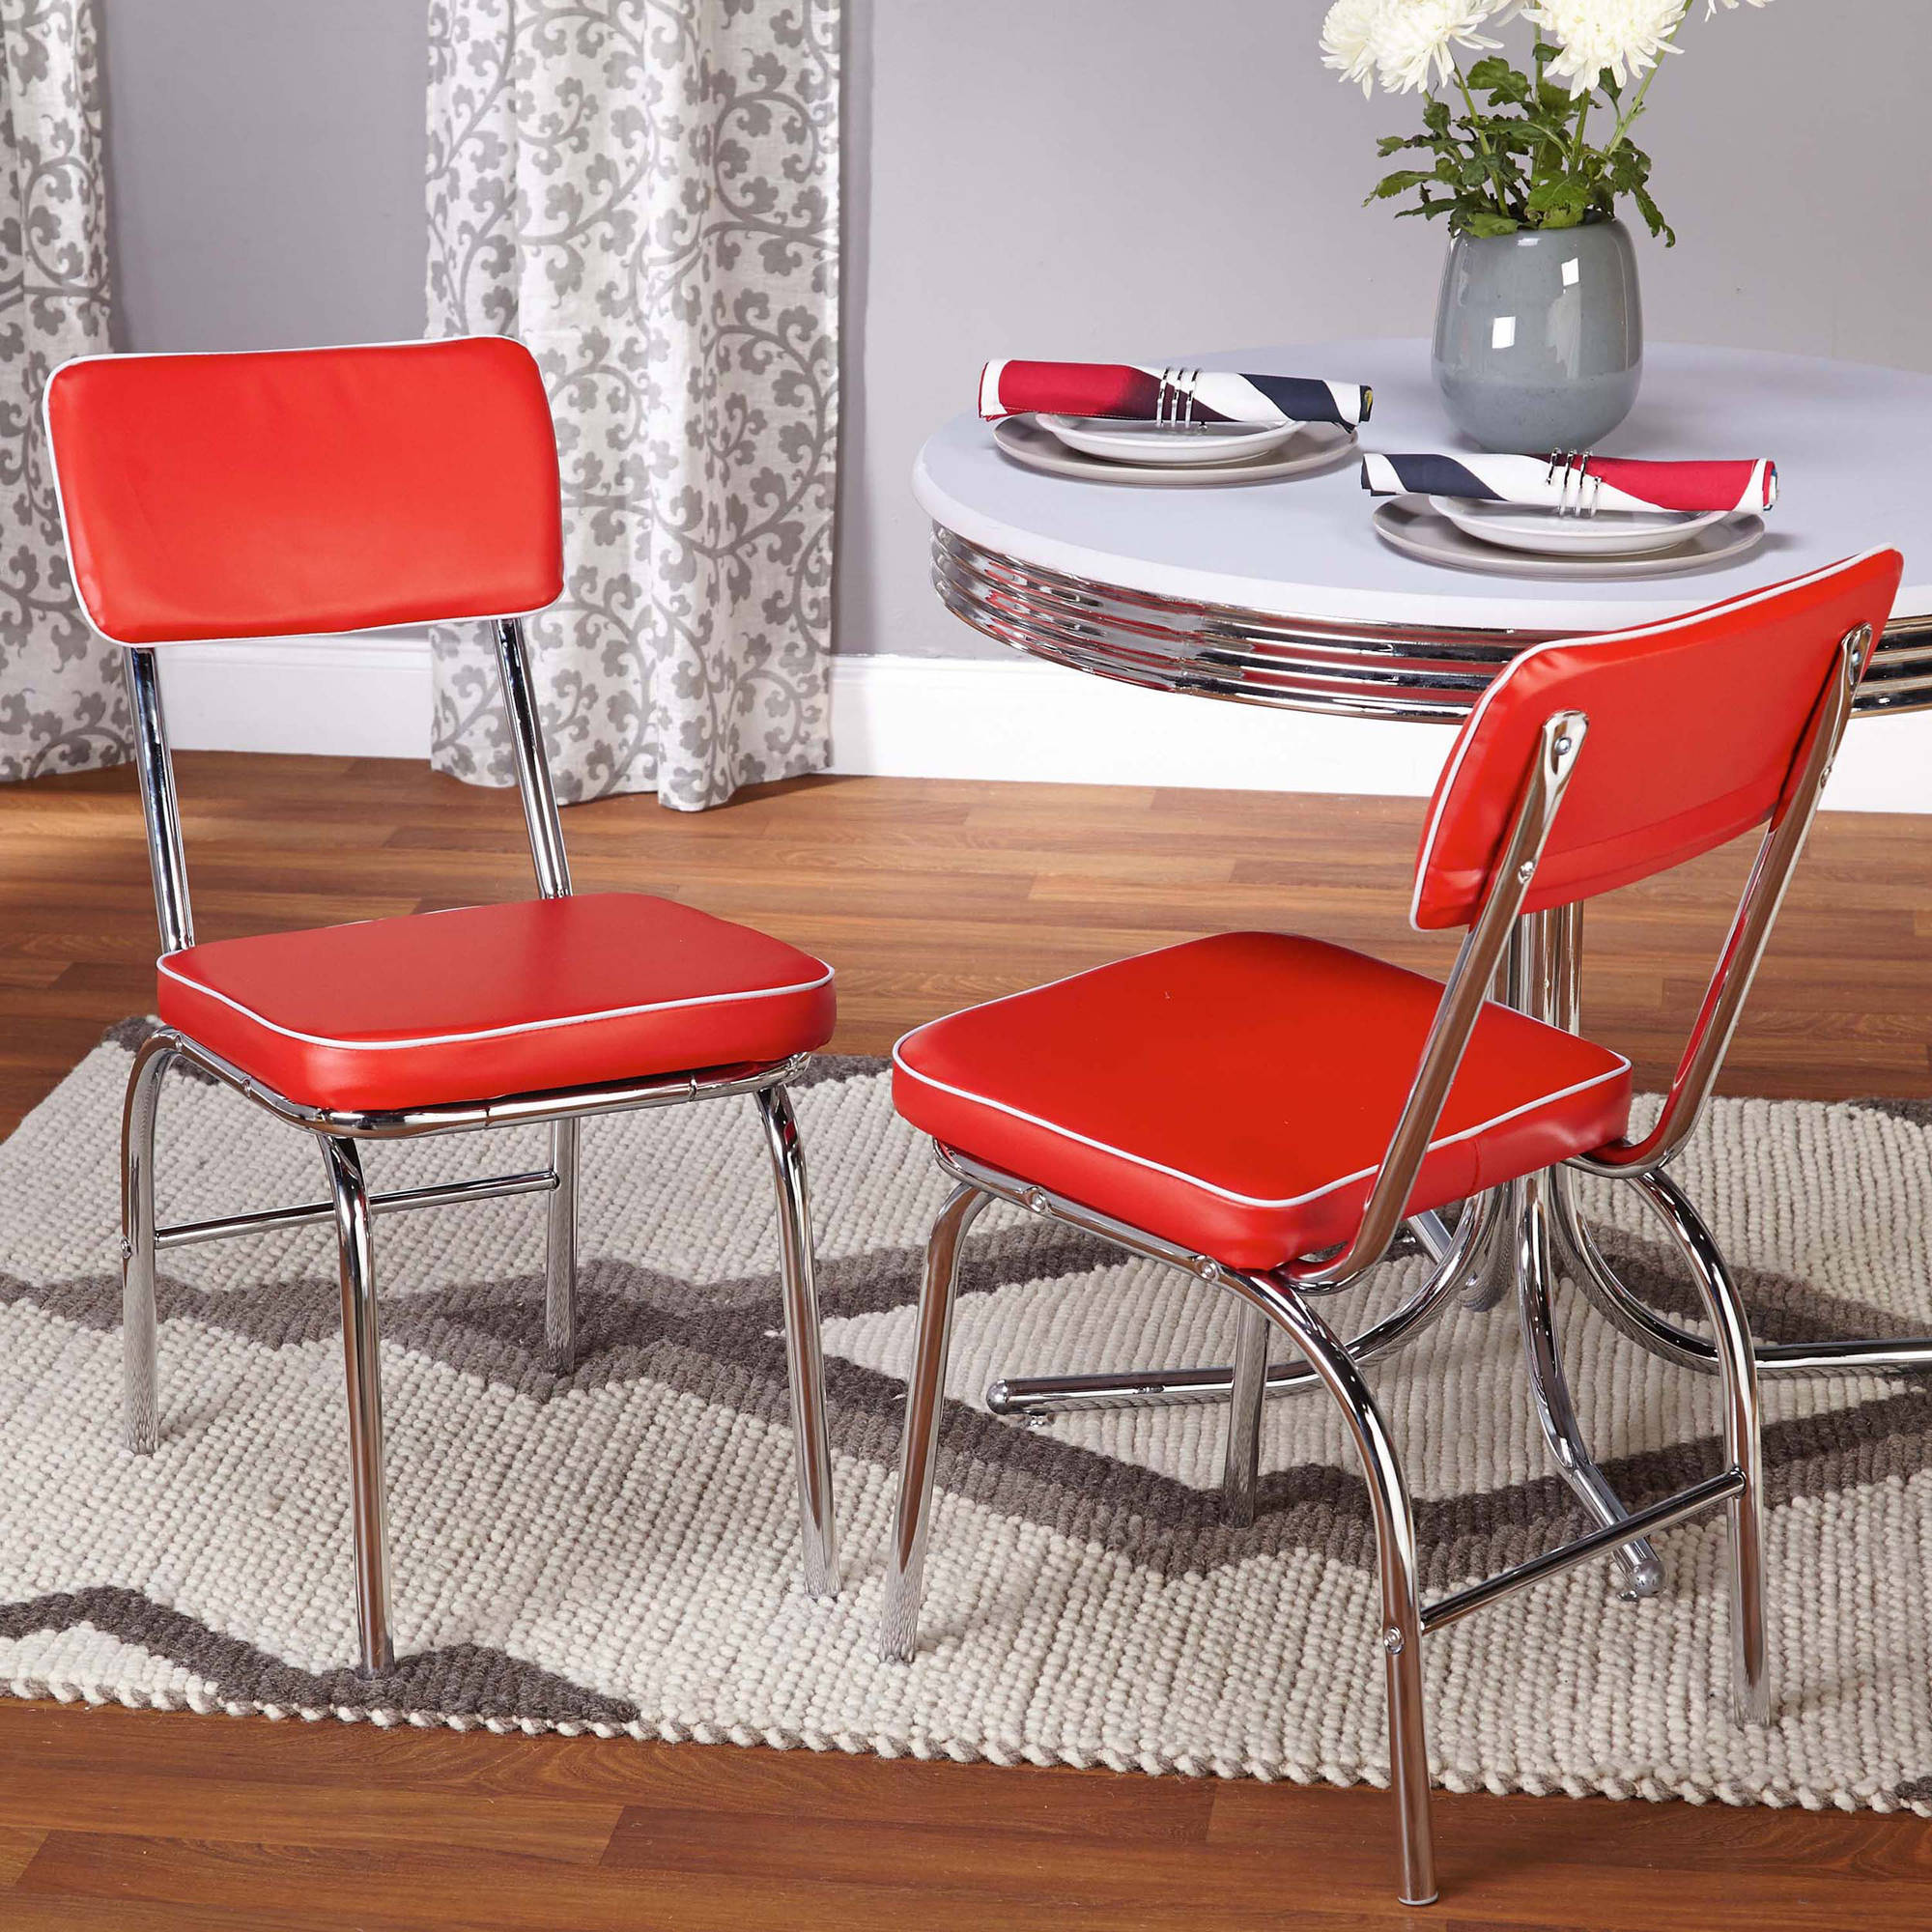 Retro Dining Room Chairs: Retro 5-Piece Dining Set Bundle, Red